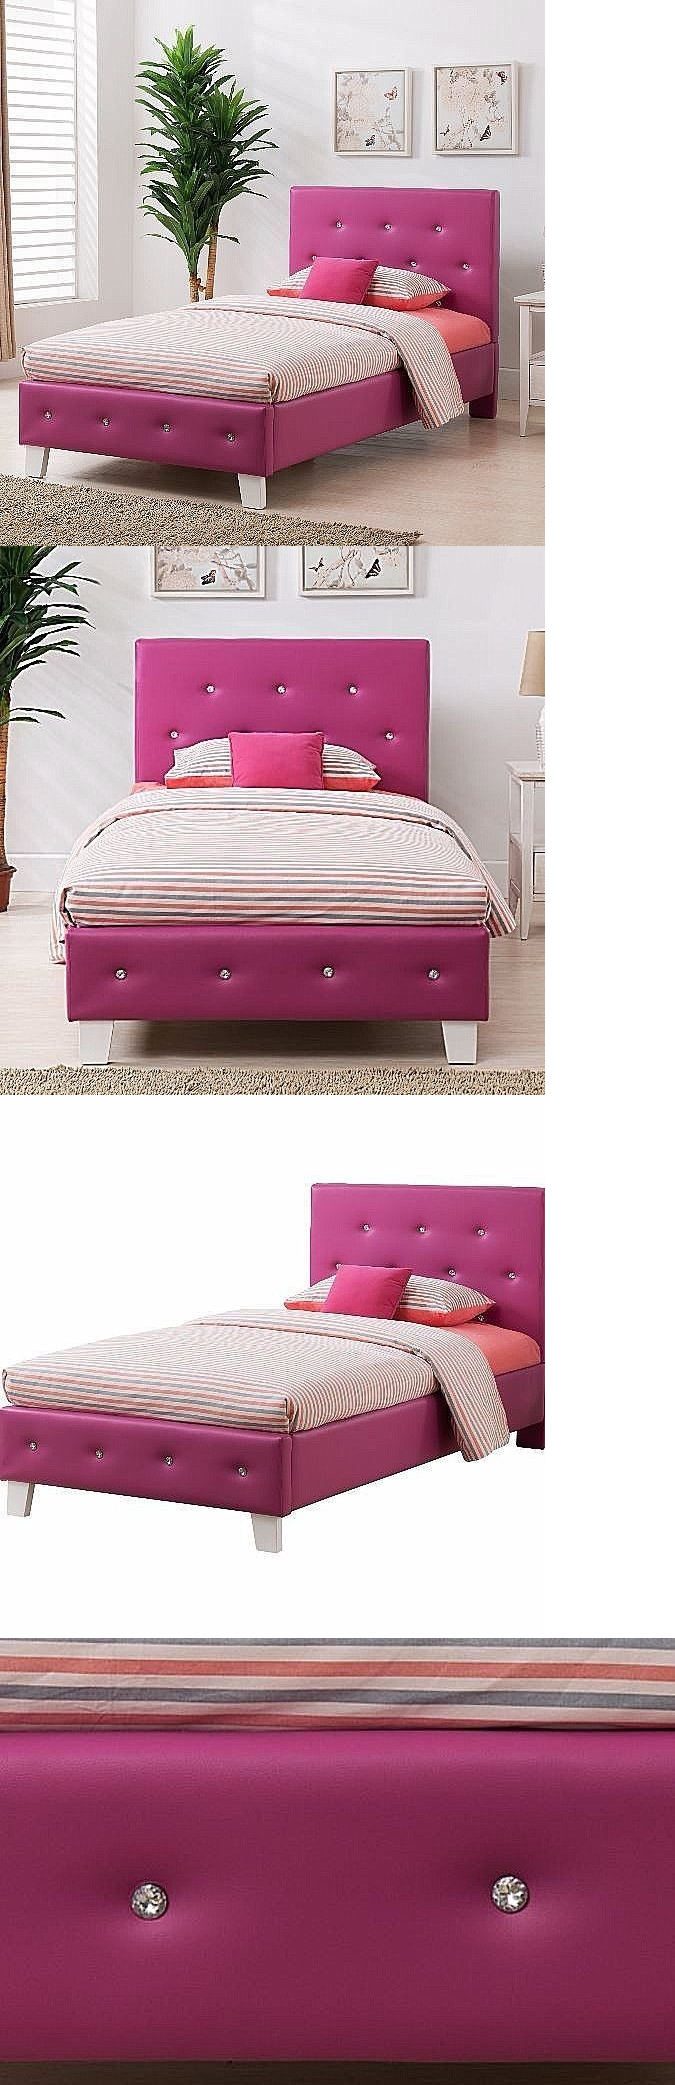 Kids at home bedroom furniture for teen girls kids twin panel bed